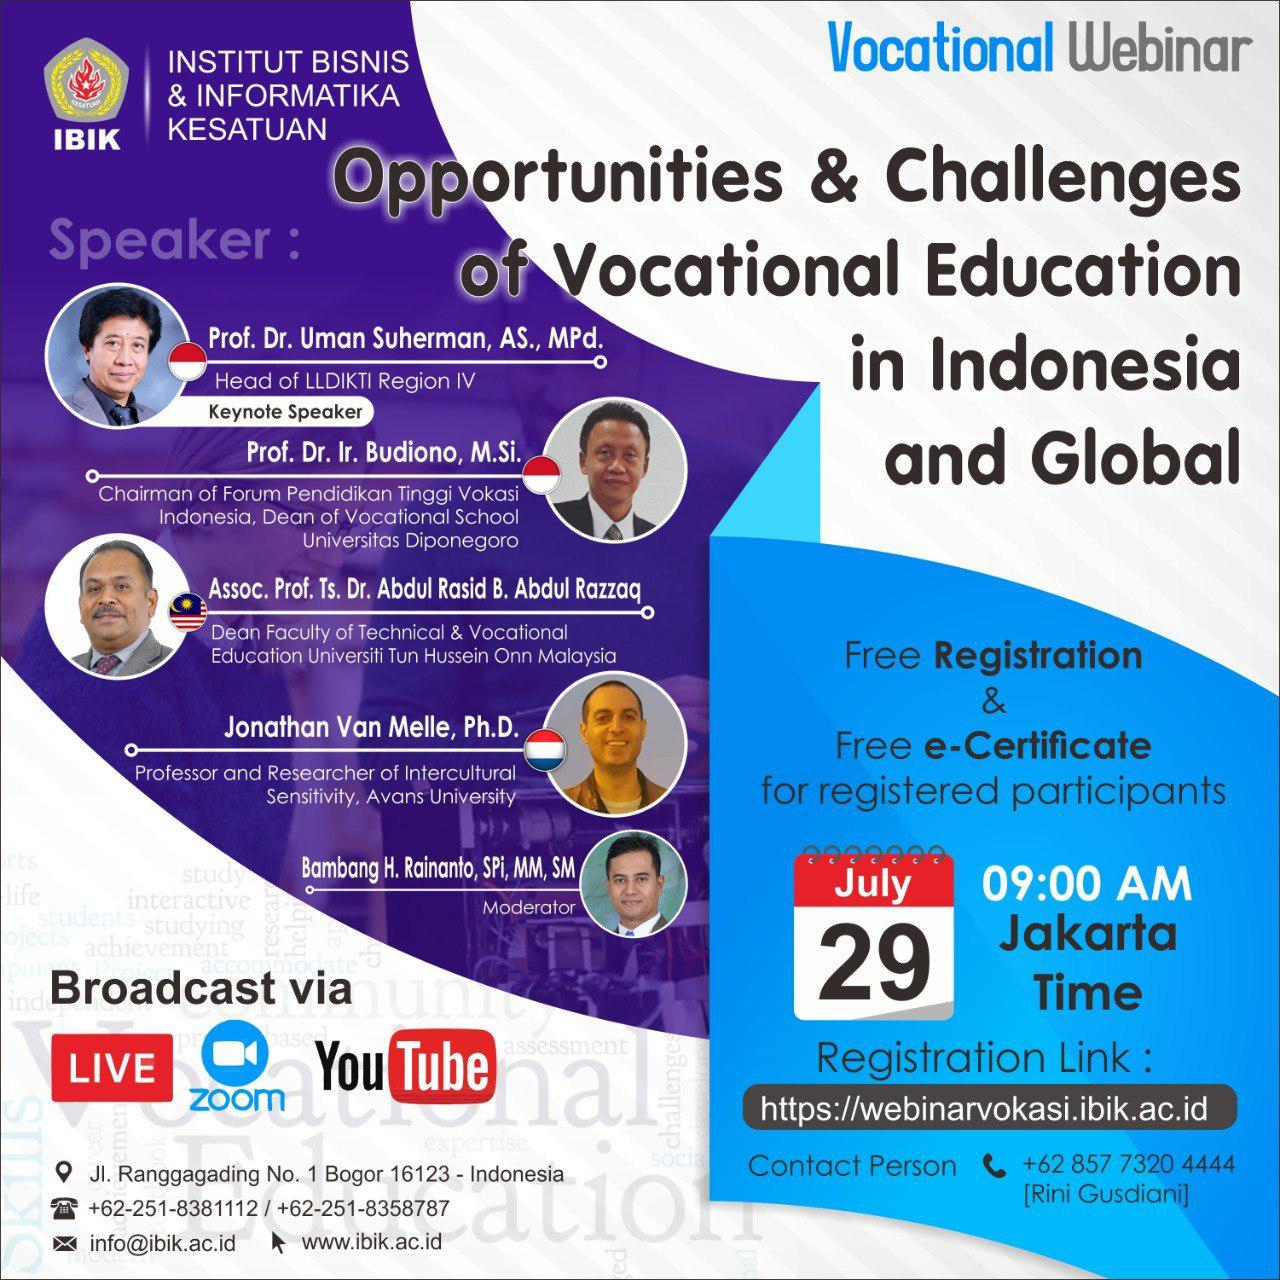 Opportunities & Challenges Vocational Education In Indonesia and Global